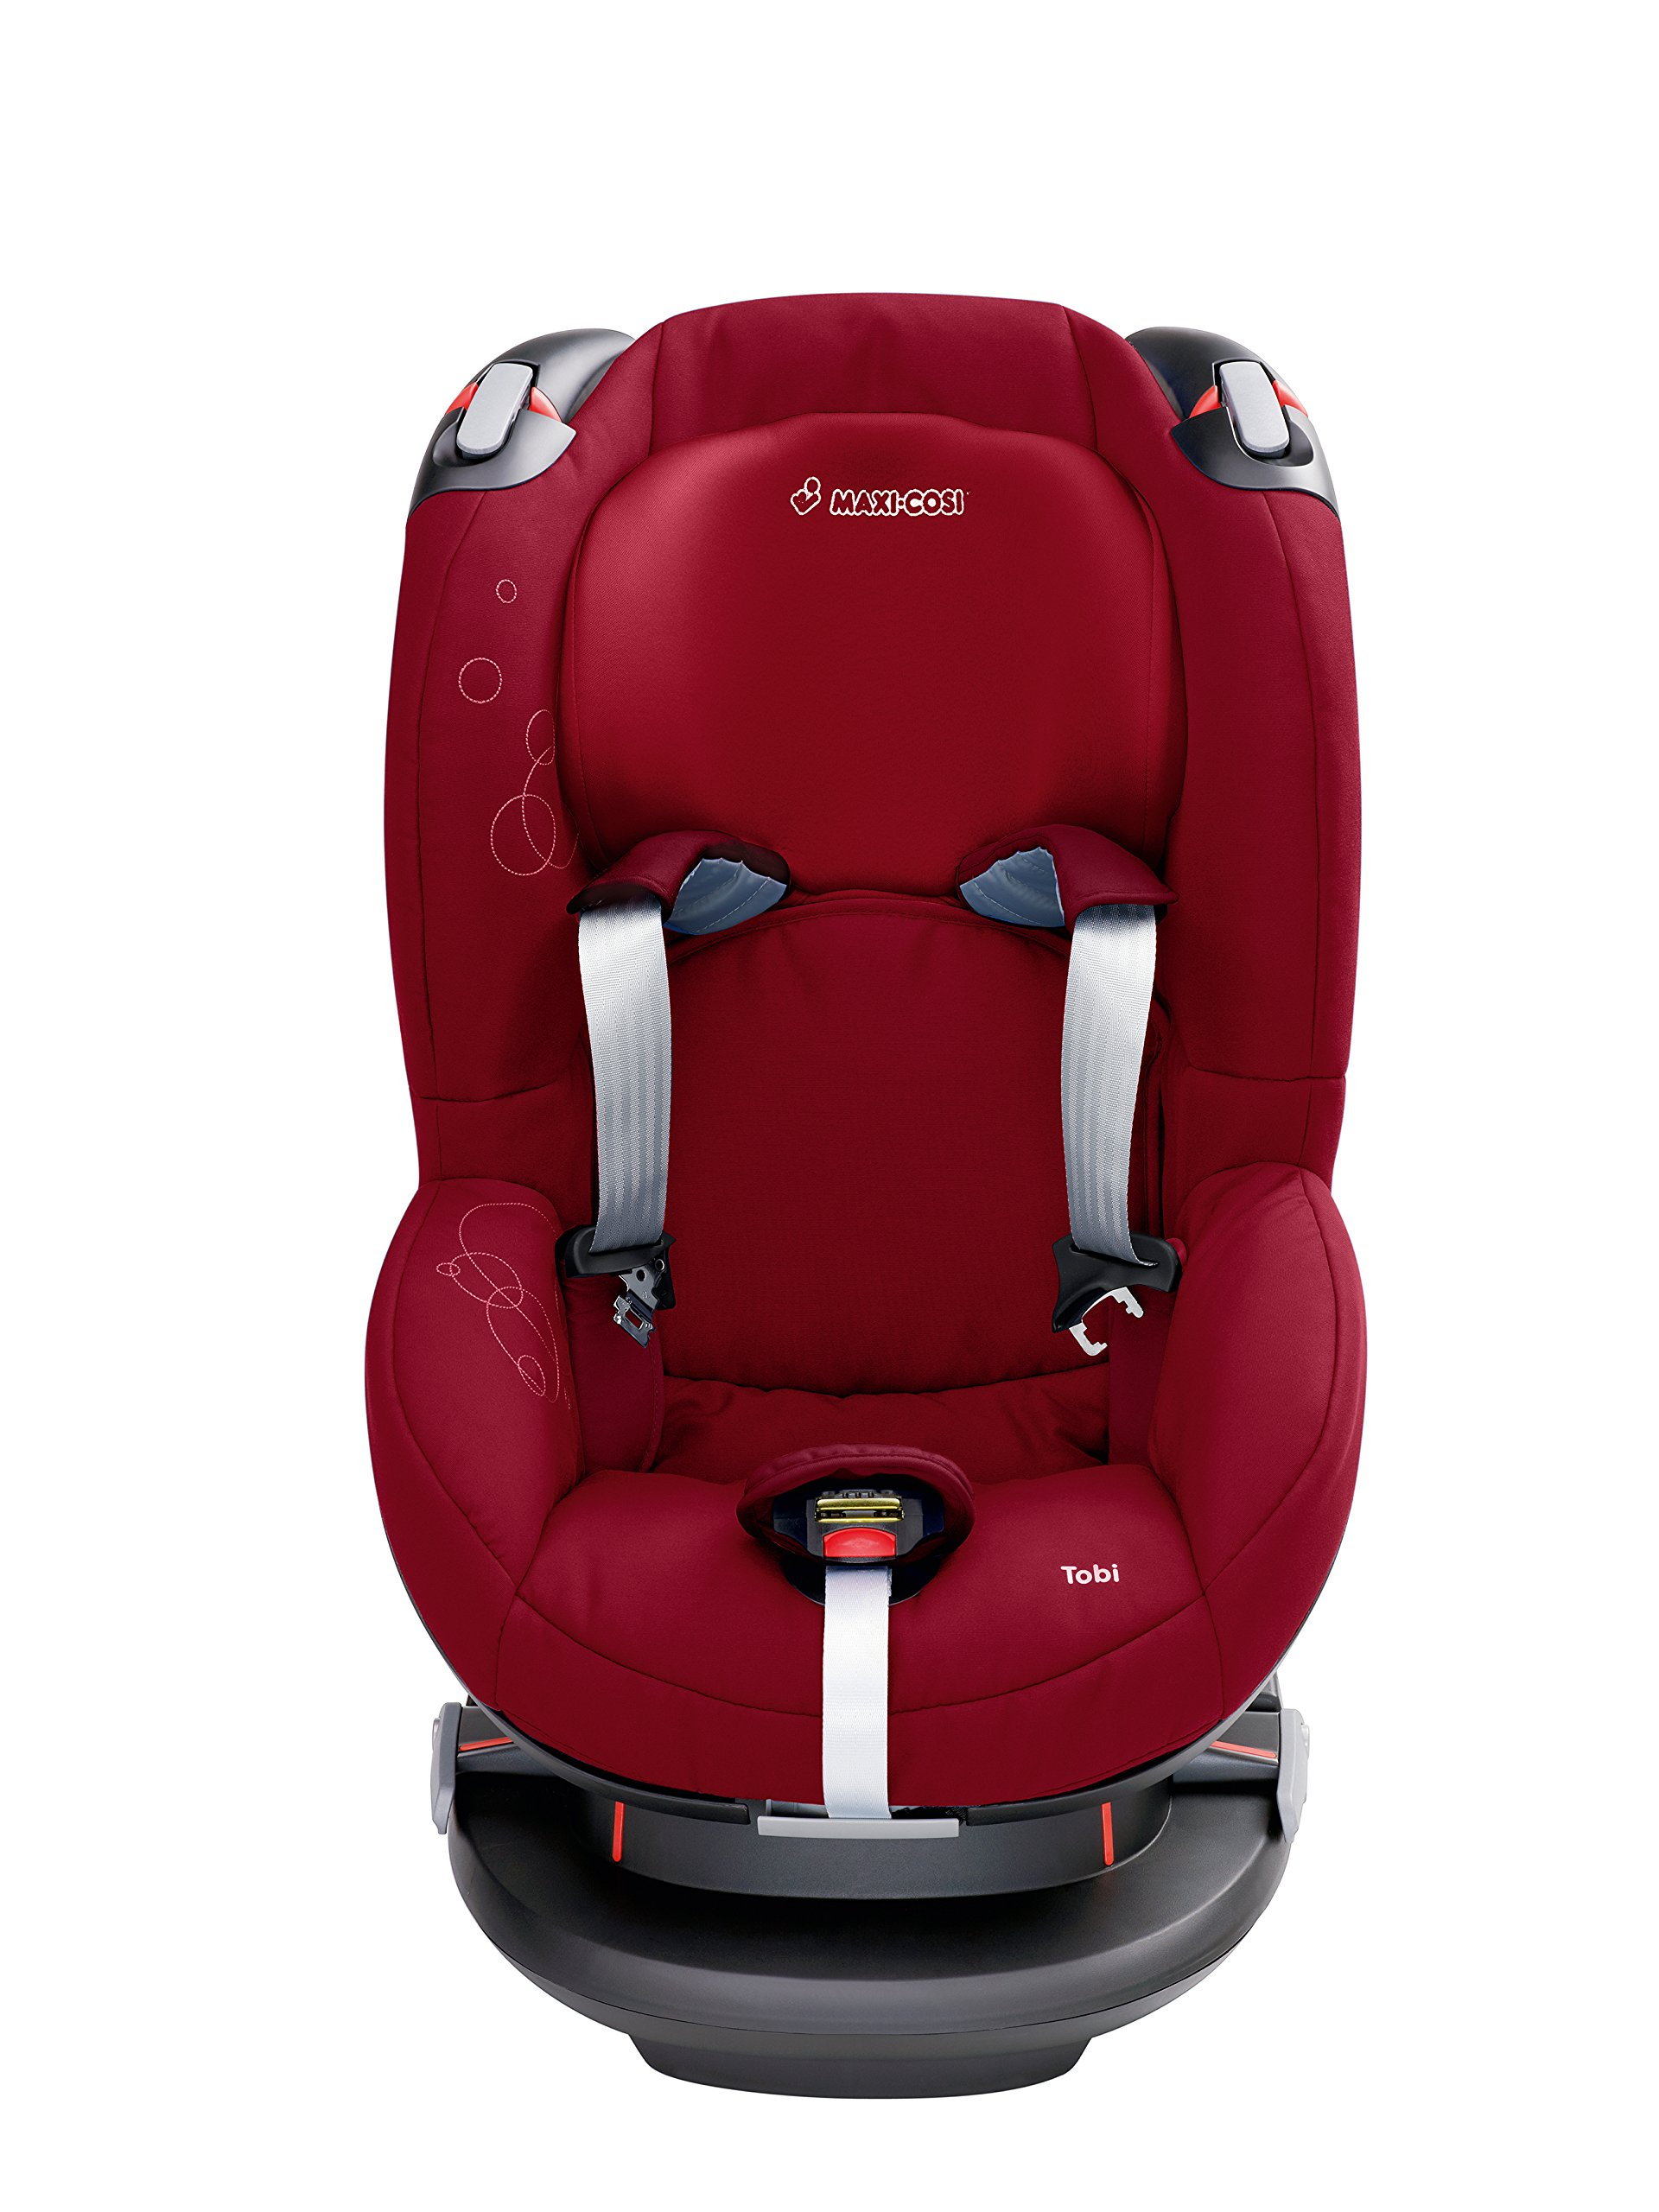 Maxi-Cosi Tobi Toddler Car Seat Group 1, Forward-Facing Reclining Car Seat, 9 Months-4 Years, 9-18 kg, Denim Hearts Maxi-Cosi Forward facing, suitable for toddler of weight 9-18 kg Easy to install with a three-point safety belt Intuitive and easy to read belt routing 2